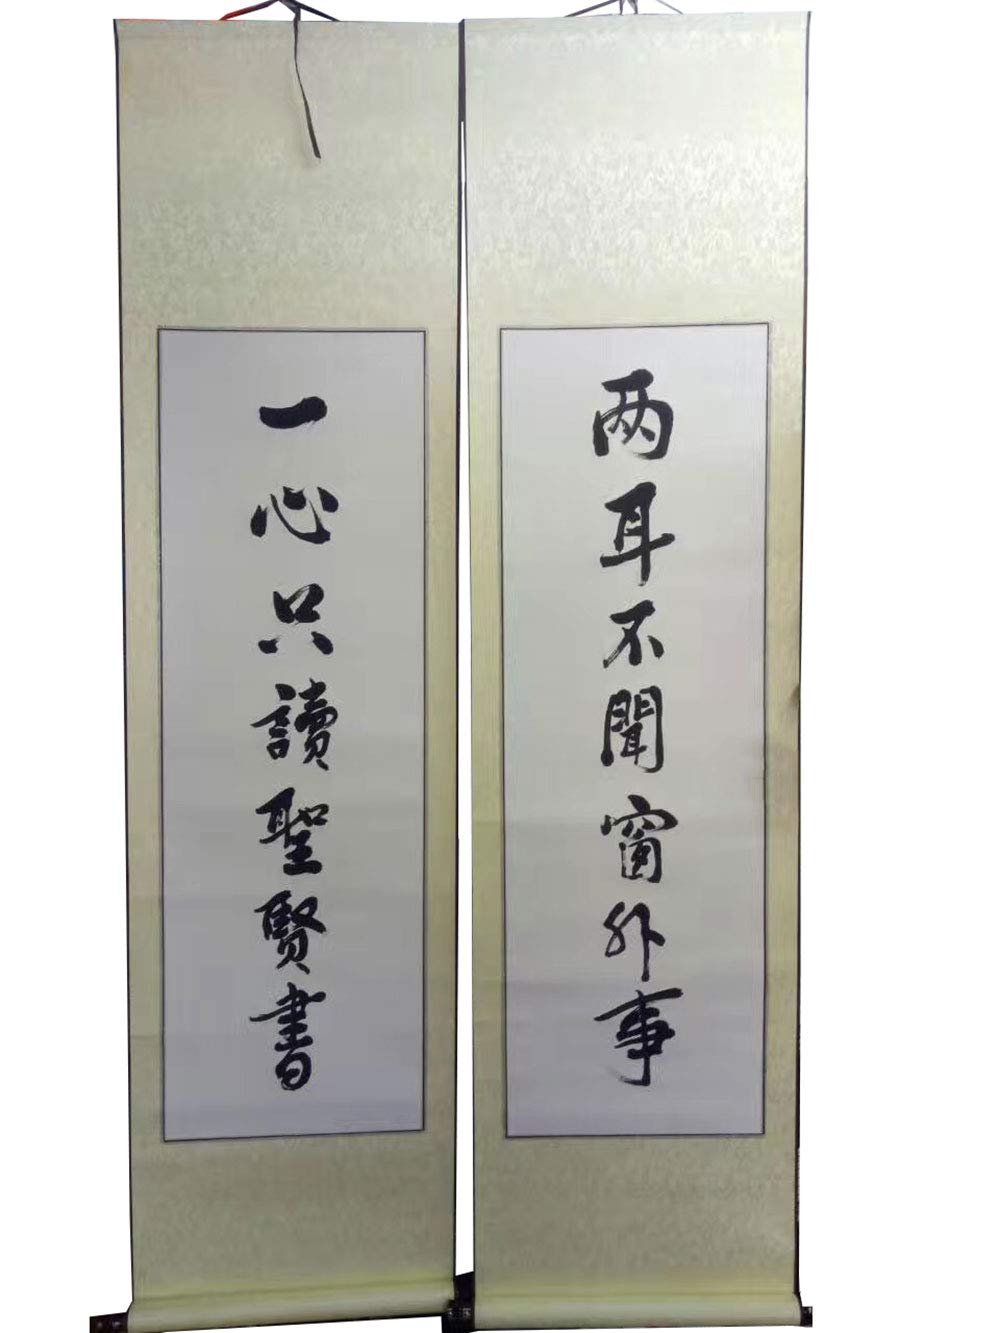 OMDD Set of 2 Sumi Hanging Scrolls Blank Calligraphy Scrolls Classic Chinese Calligraphy/Painting Blank Scrolls (Color May Vary)